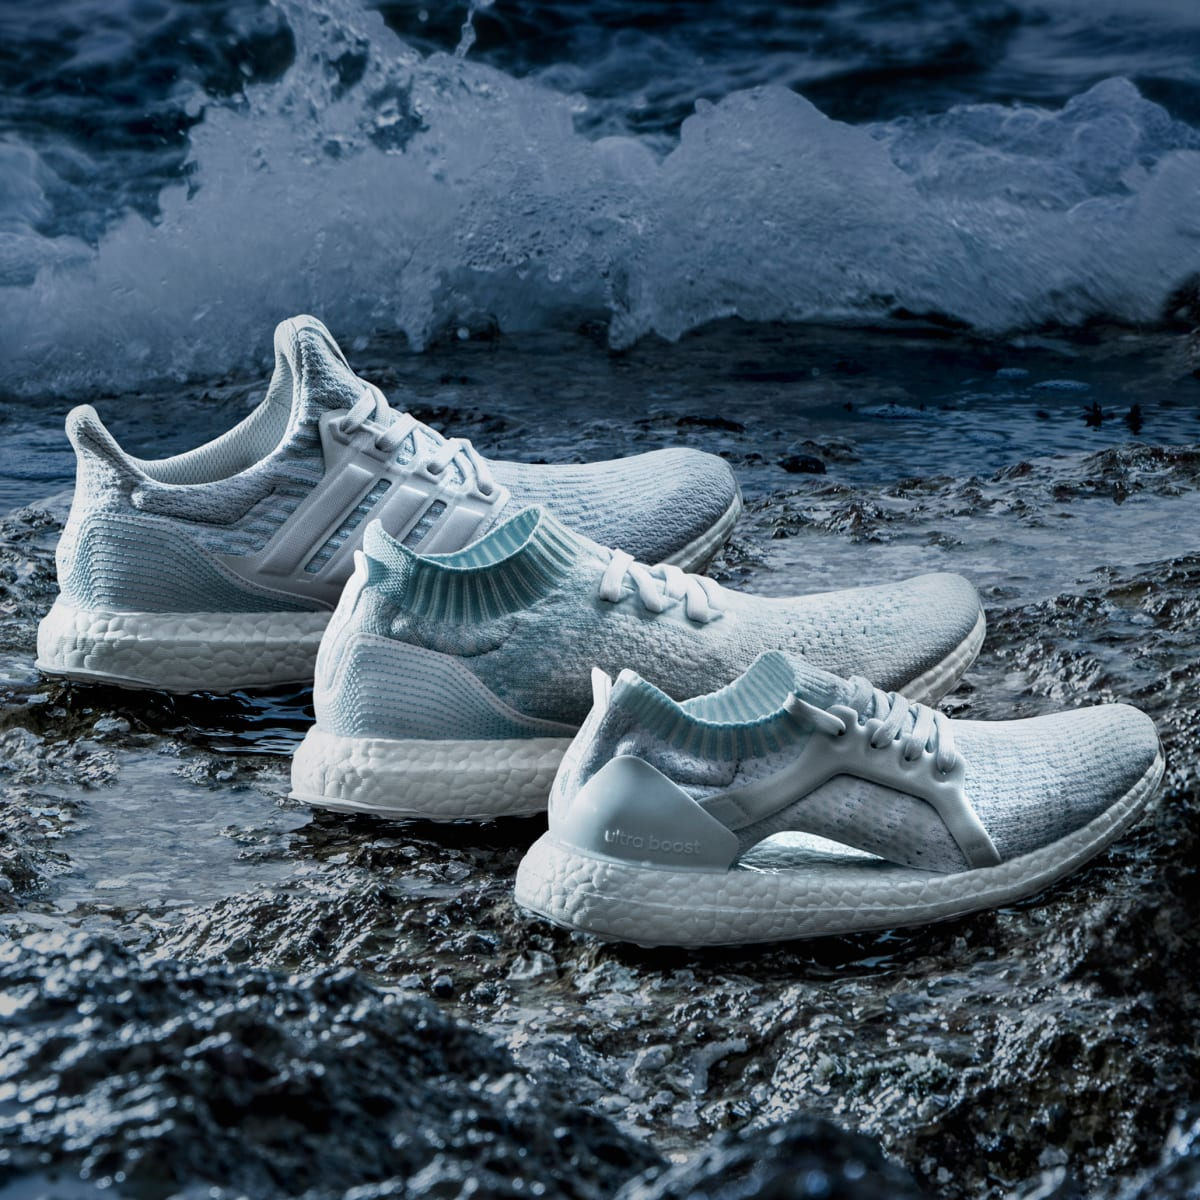 Mezclado abajo borracho  adidas & Parley Reference Coral Bleaching With New White UltraBOOST  Colorways - Ampa